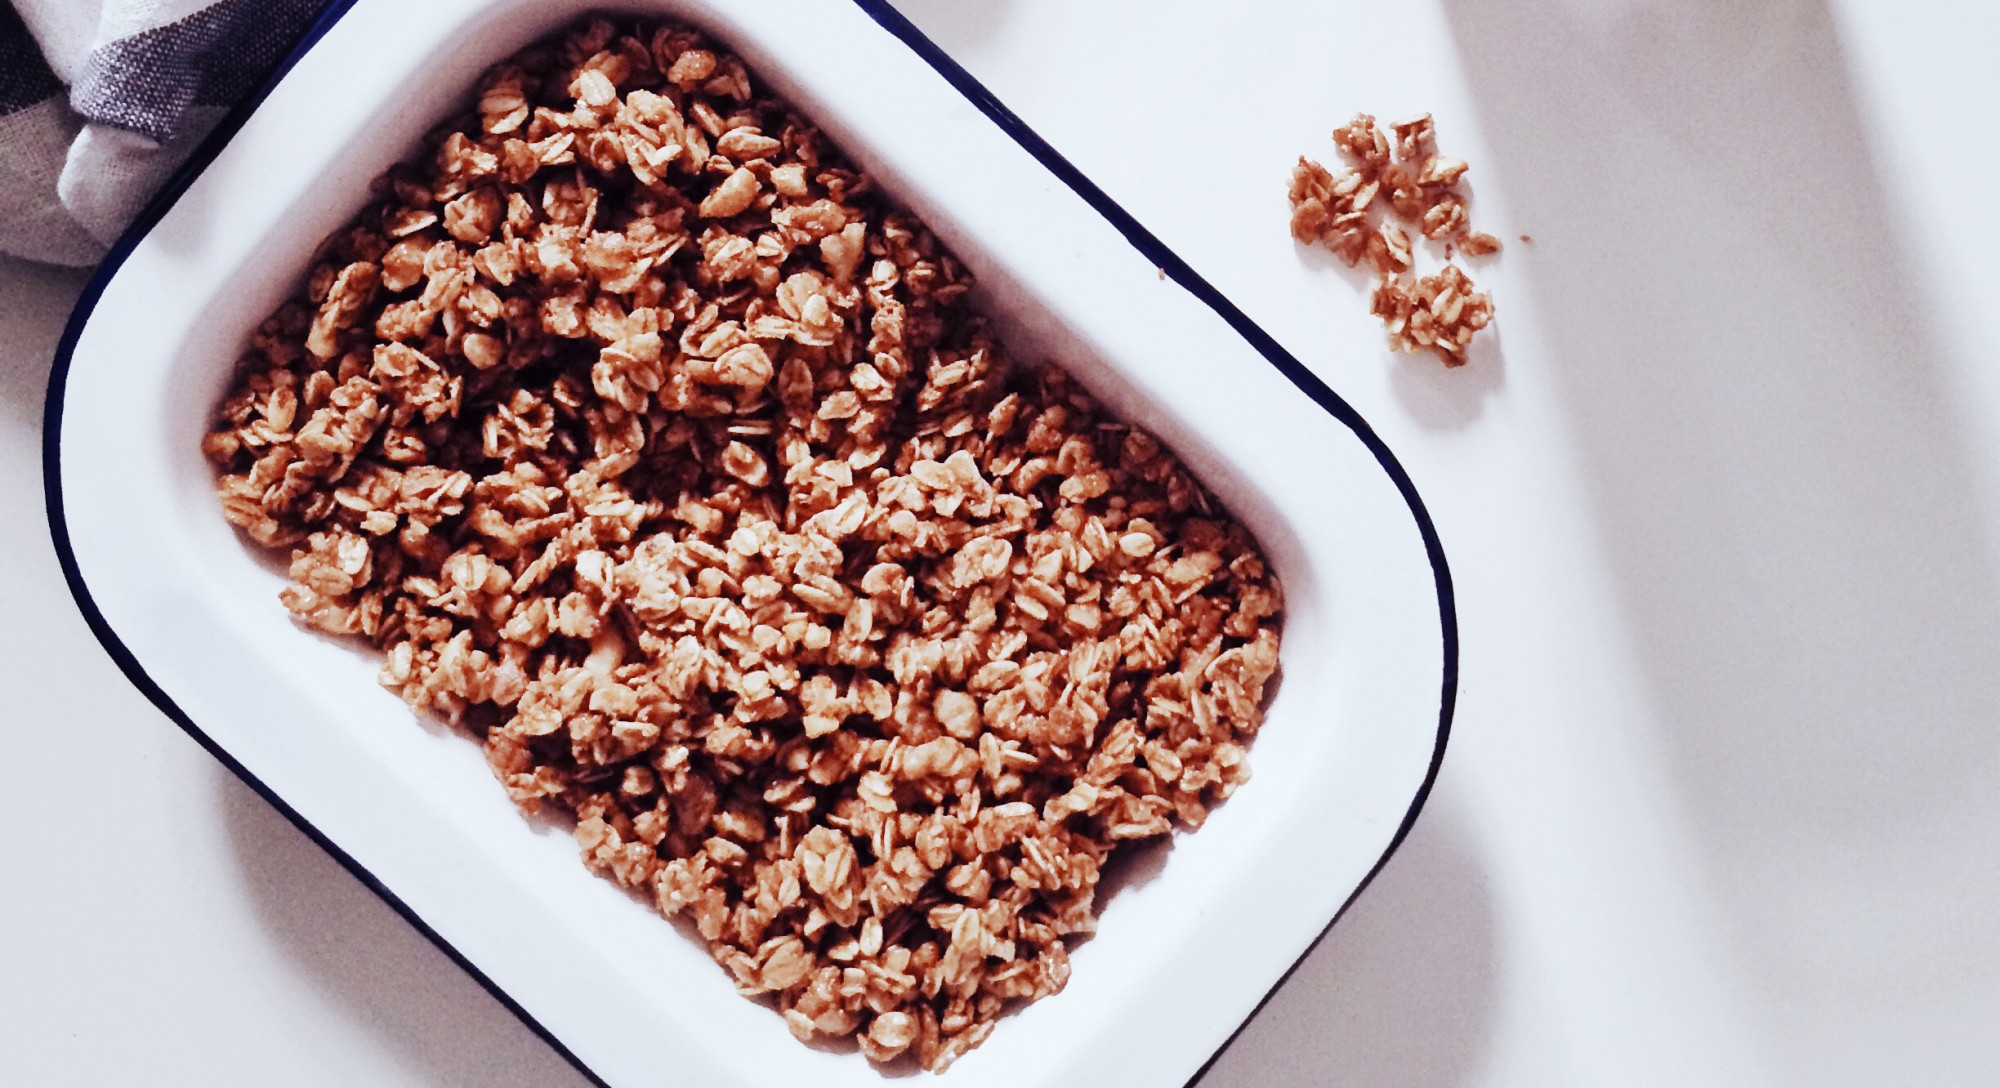 5 Snacks to Pump Up Your Energy Level